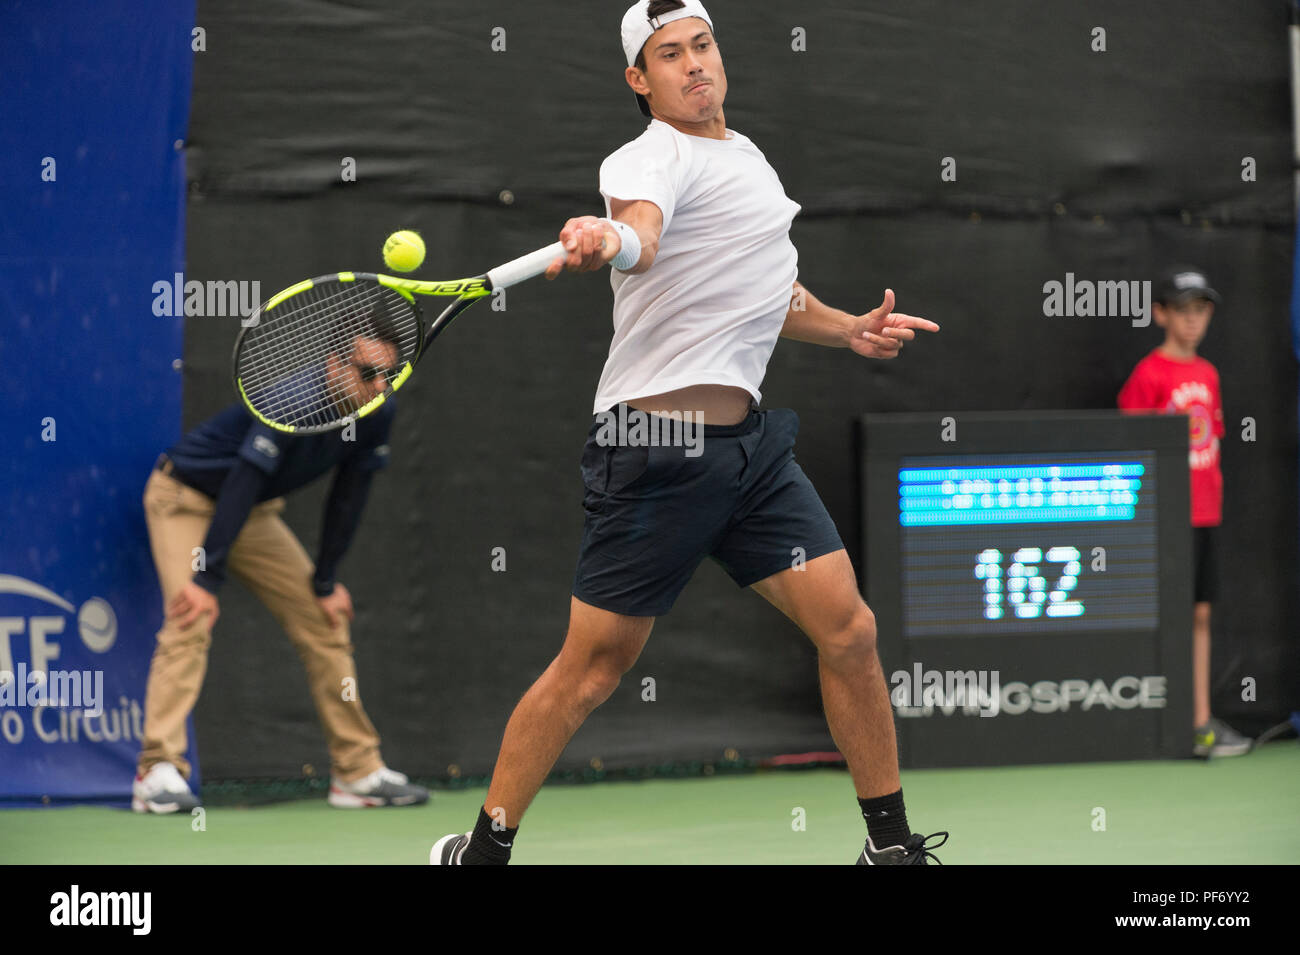 West Vancouver, Canada. 19 August 2018. Jason Kubler of Australia returning a serve, becomes runner up in ATP Challenger Tour Mens Singles Final. Odlum Brown VanOpen. Hollyburn Country Club.  © Gerry Rousseau/Alamy Live News - Stock Image